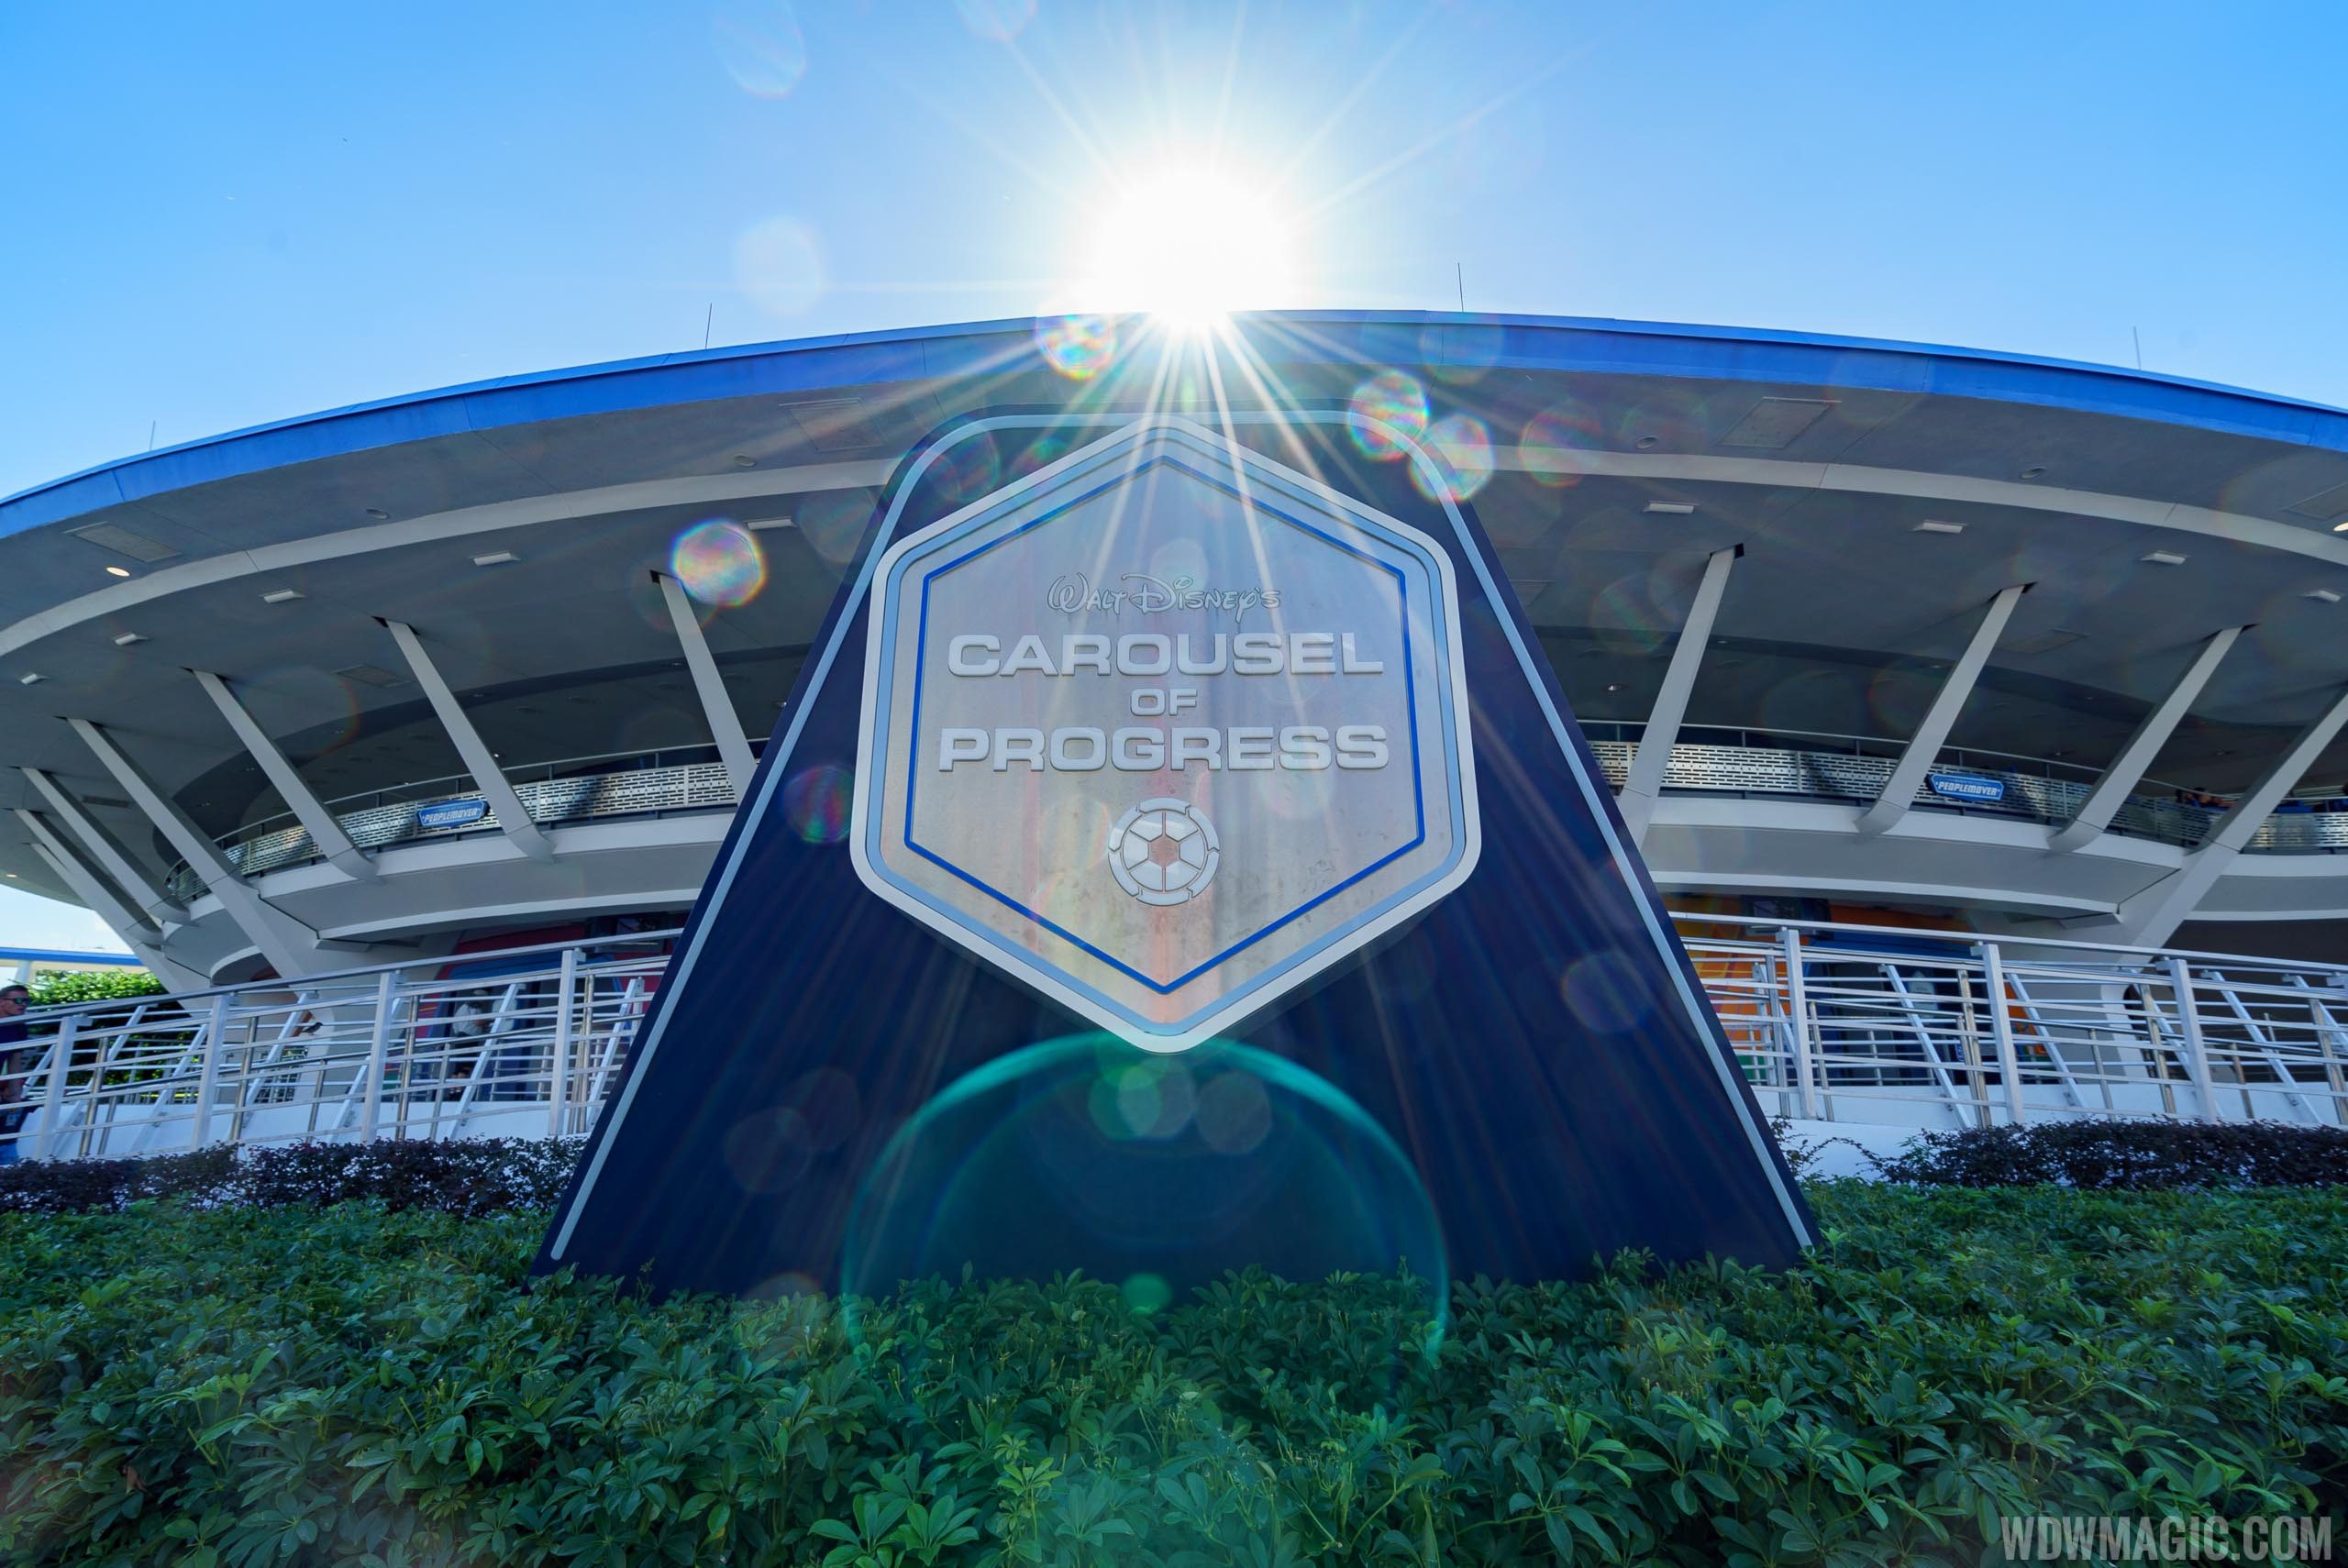 New marquee sign at Carousel of Progress